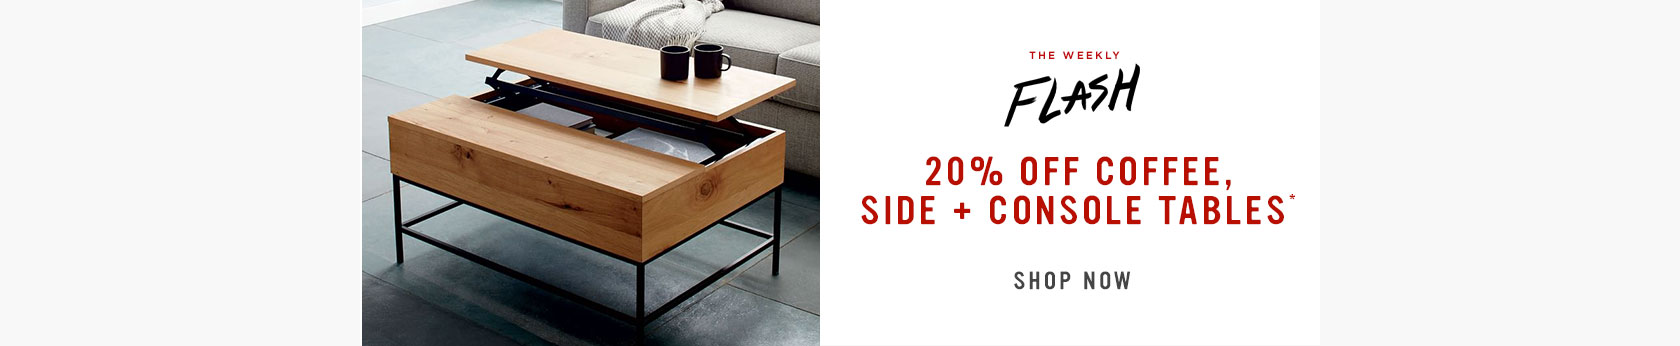 20% Off Coffee, Side + Cosole Tables